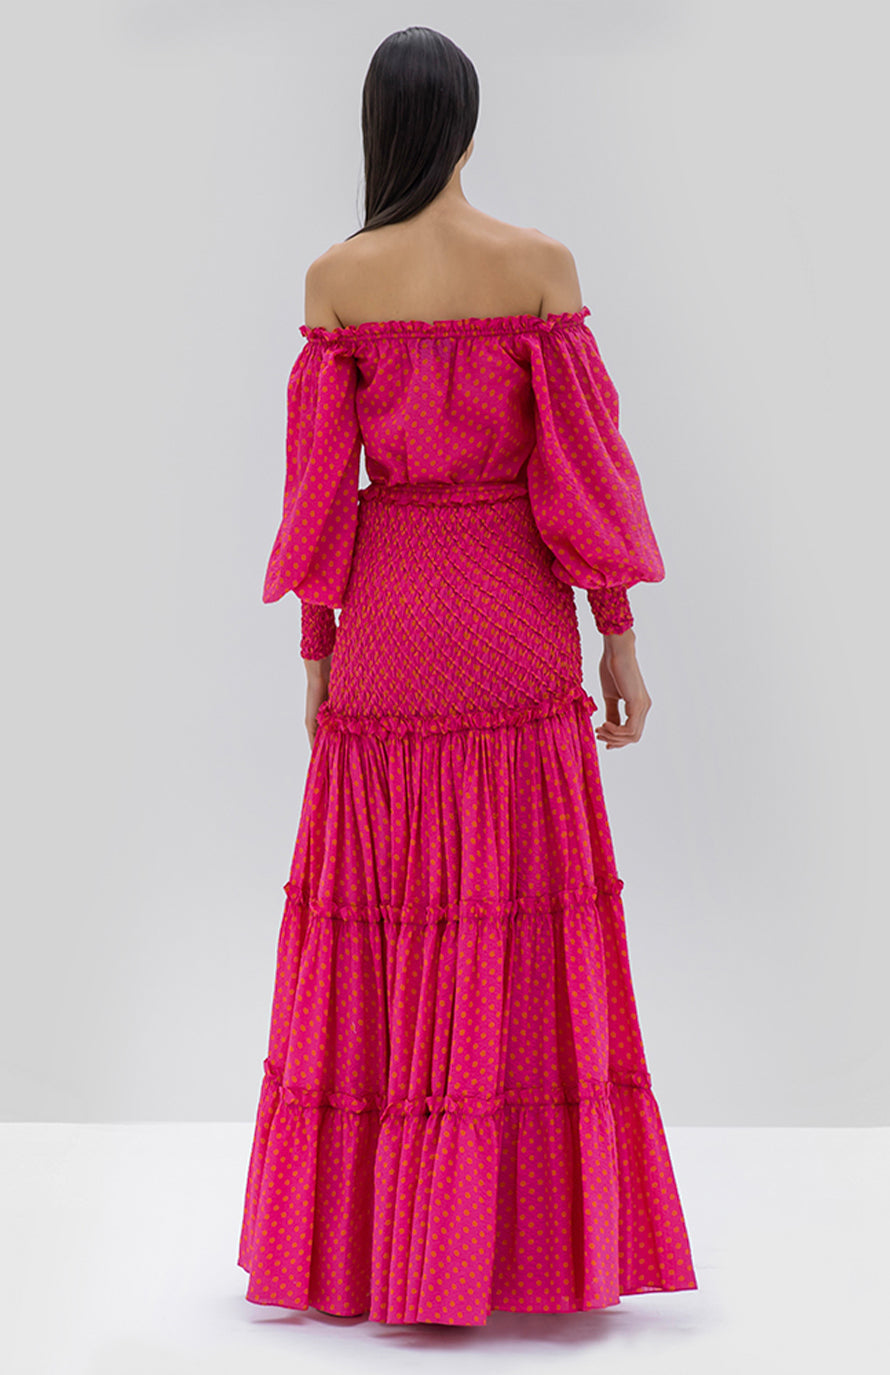 Alexis Thalssa Dress Fuchsia dot - Rear View